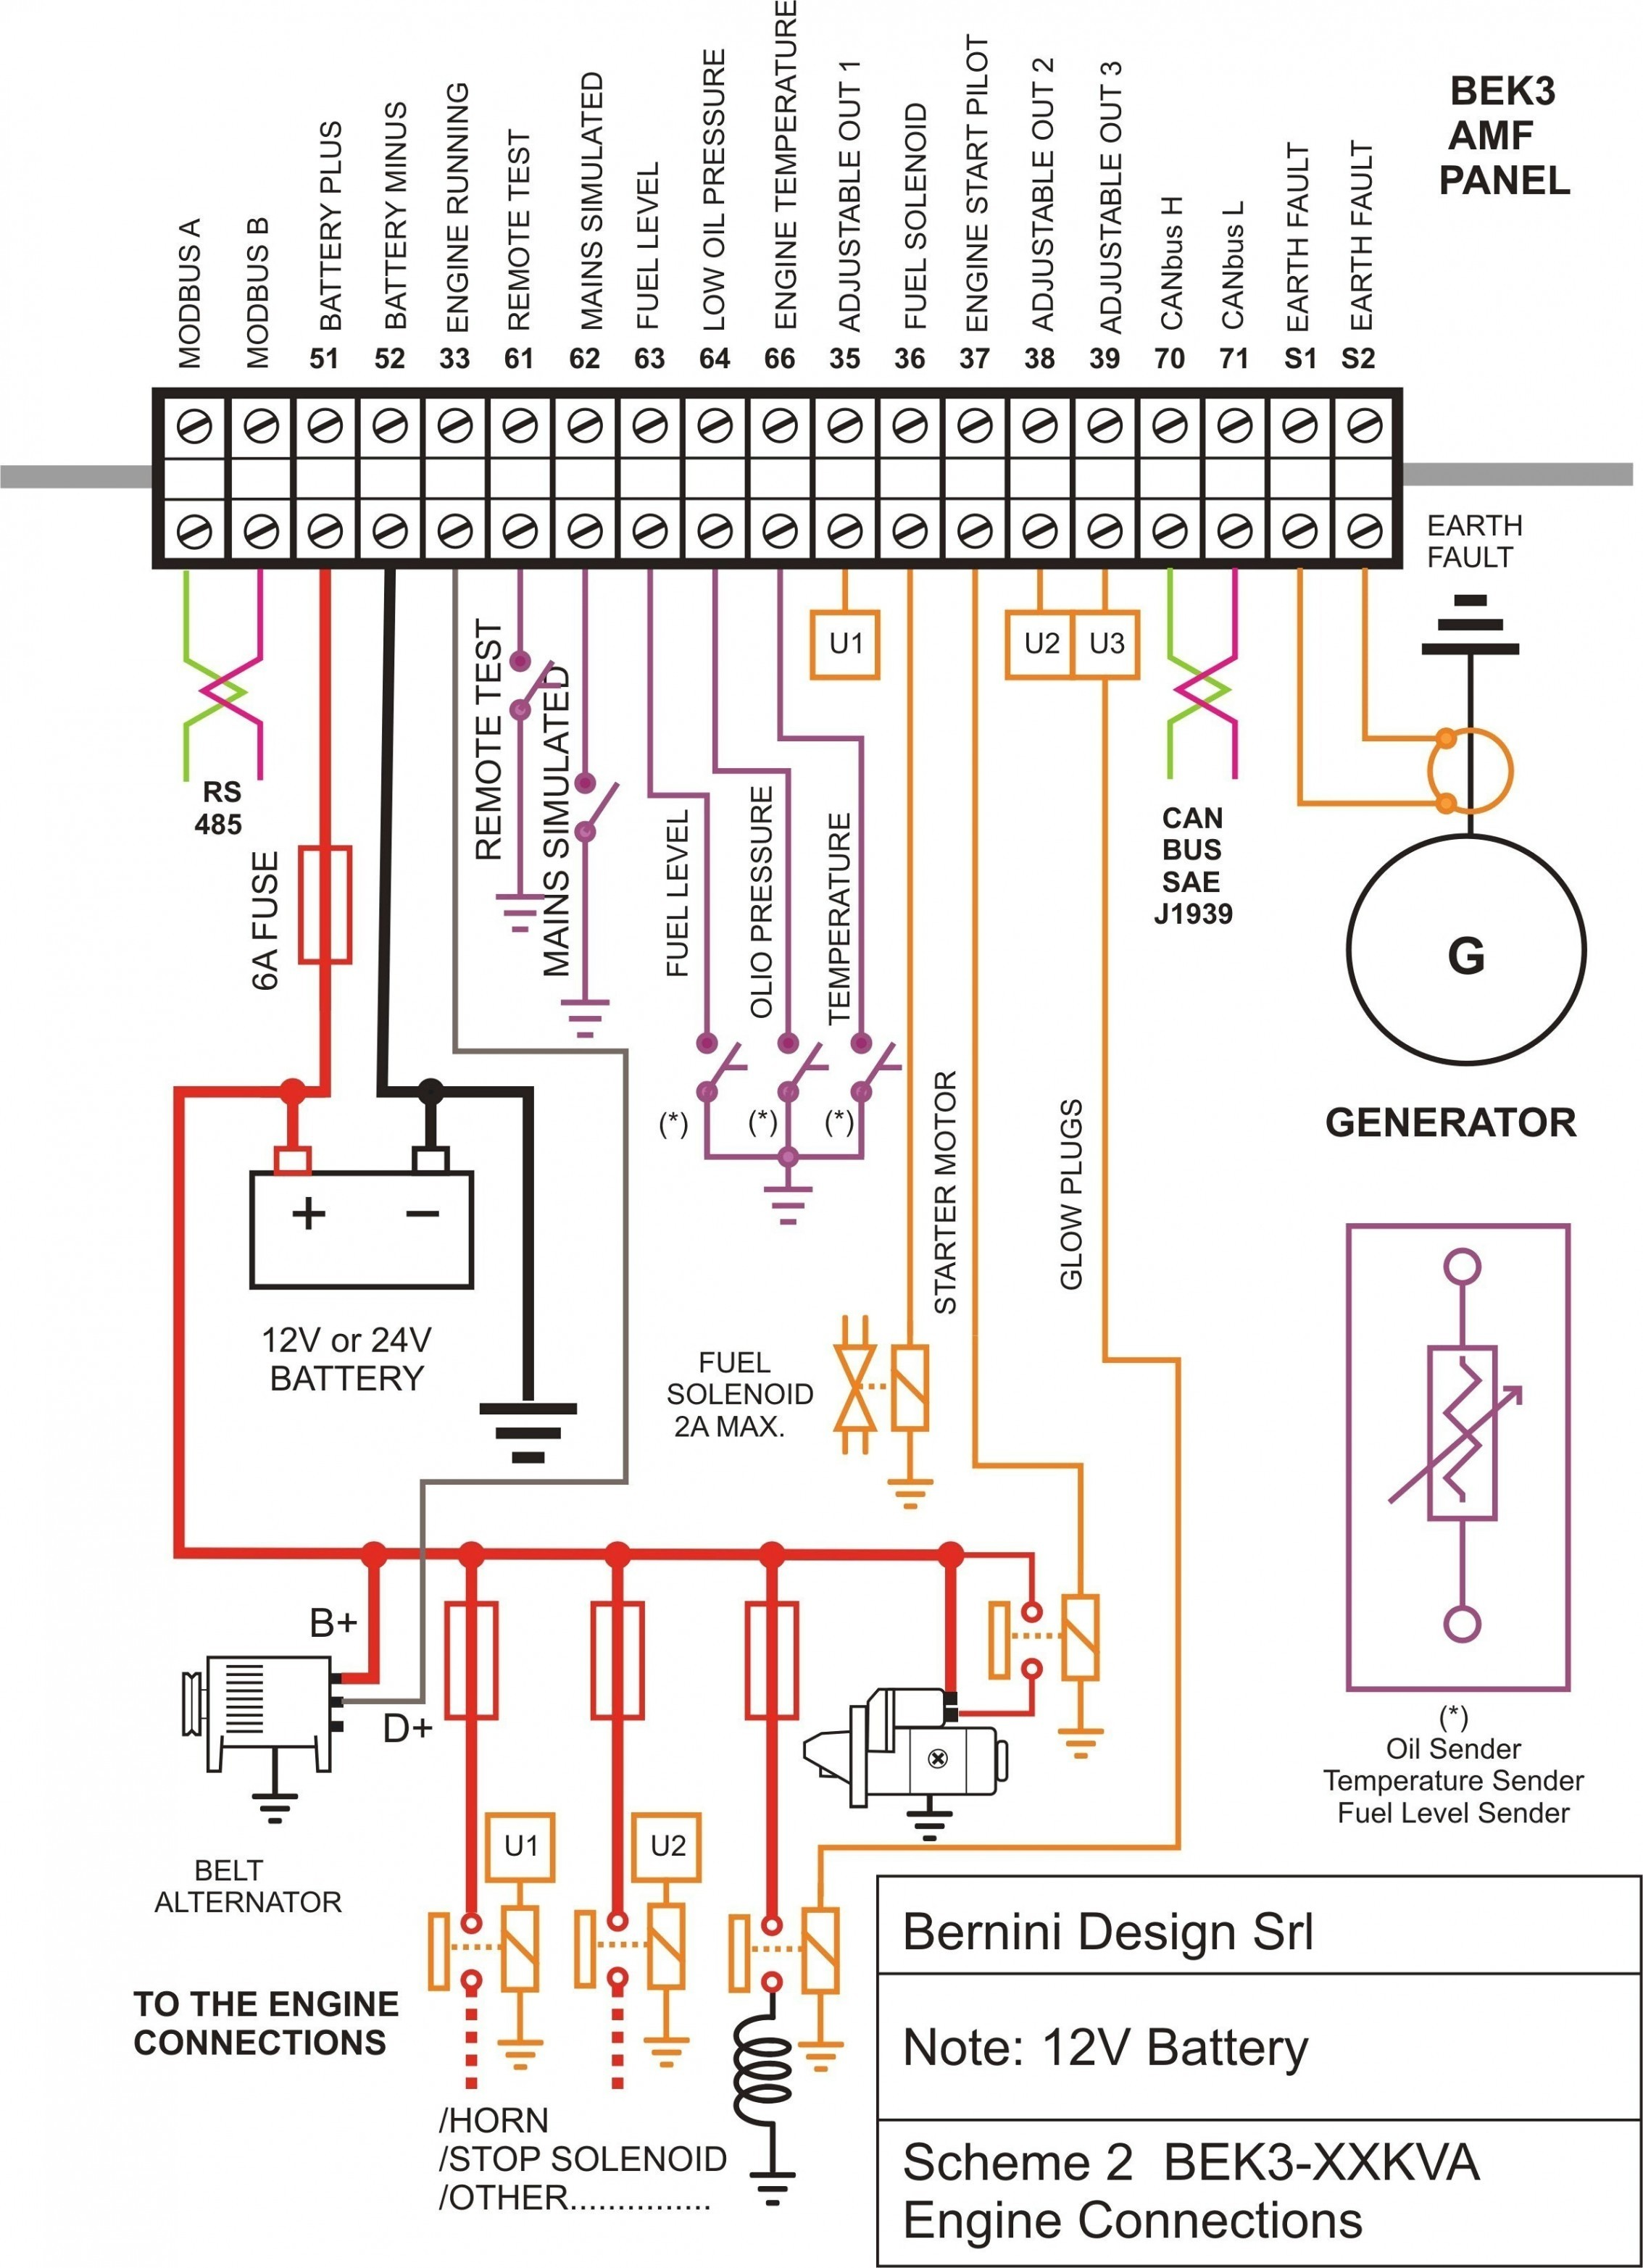 House Wiring Diagram – Electrical Wiring Diagrams Best Electrical Diagram For House